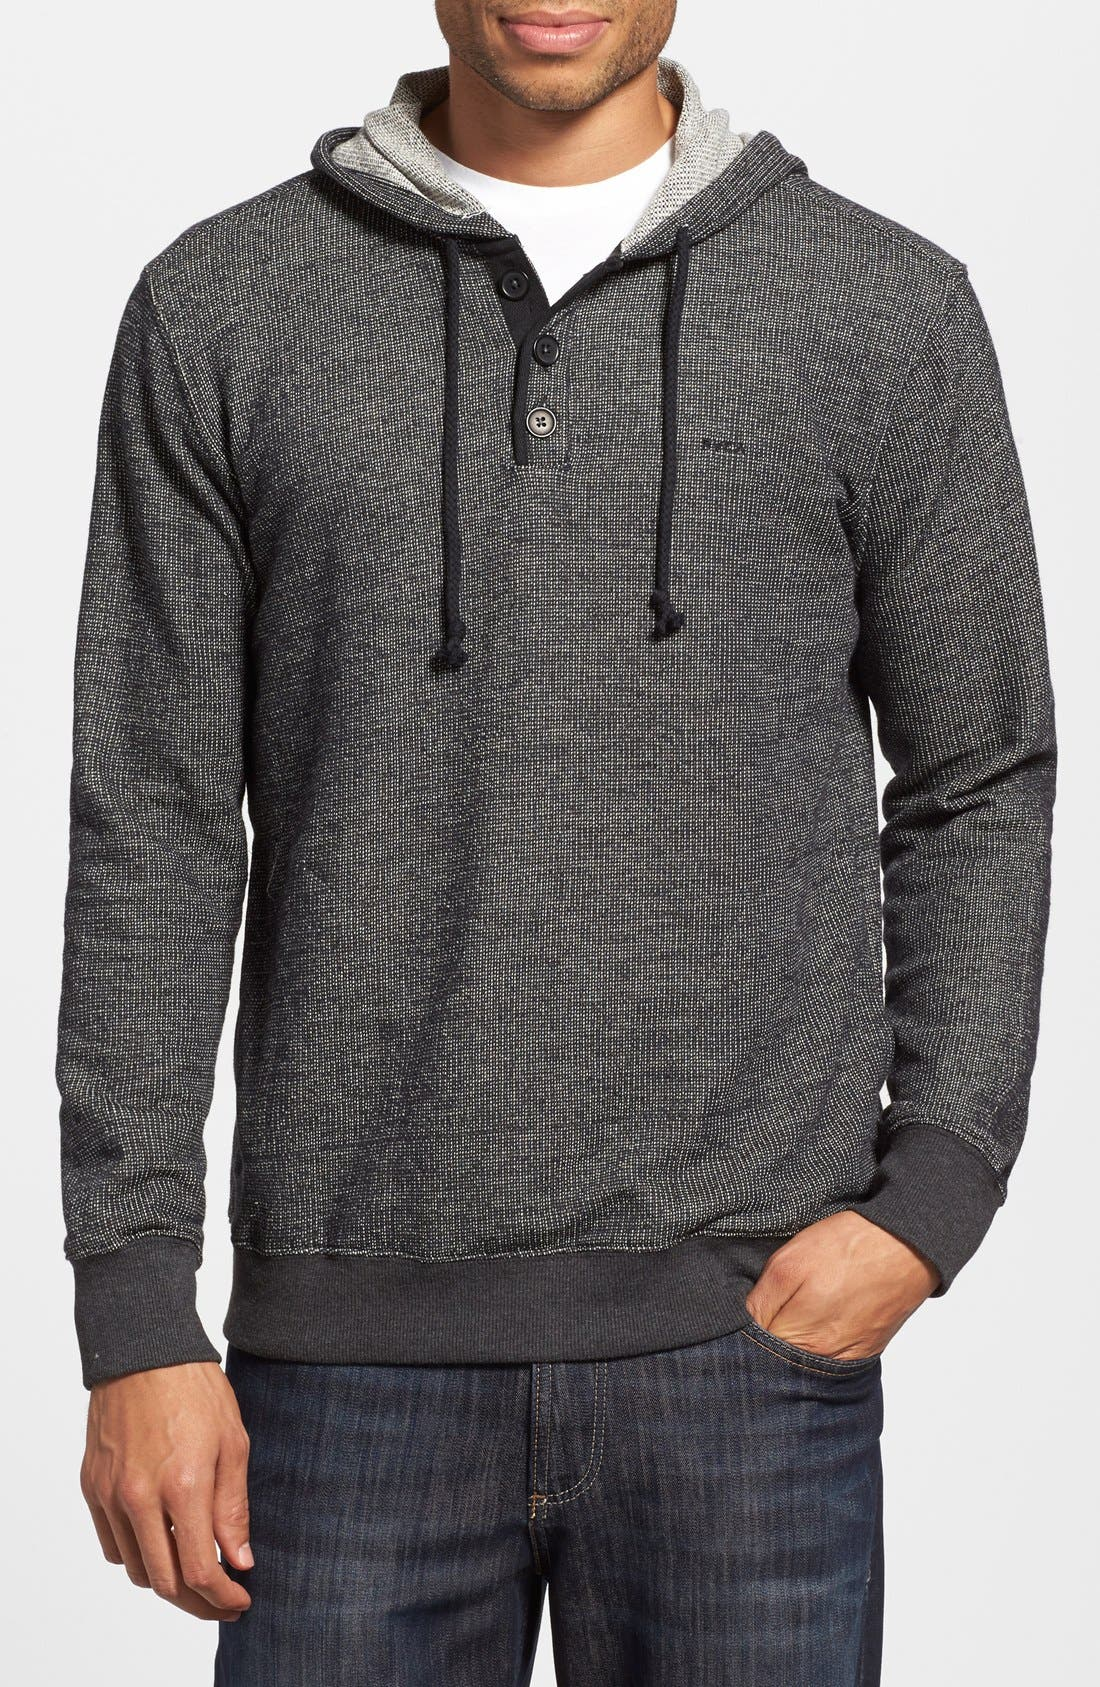 Alternate Image 1 Selected - RVCA 'Capo' Pullover Knit Hoodie